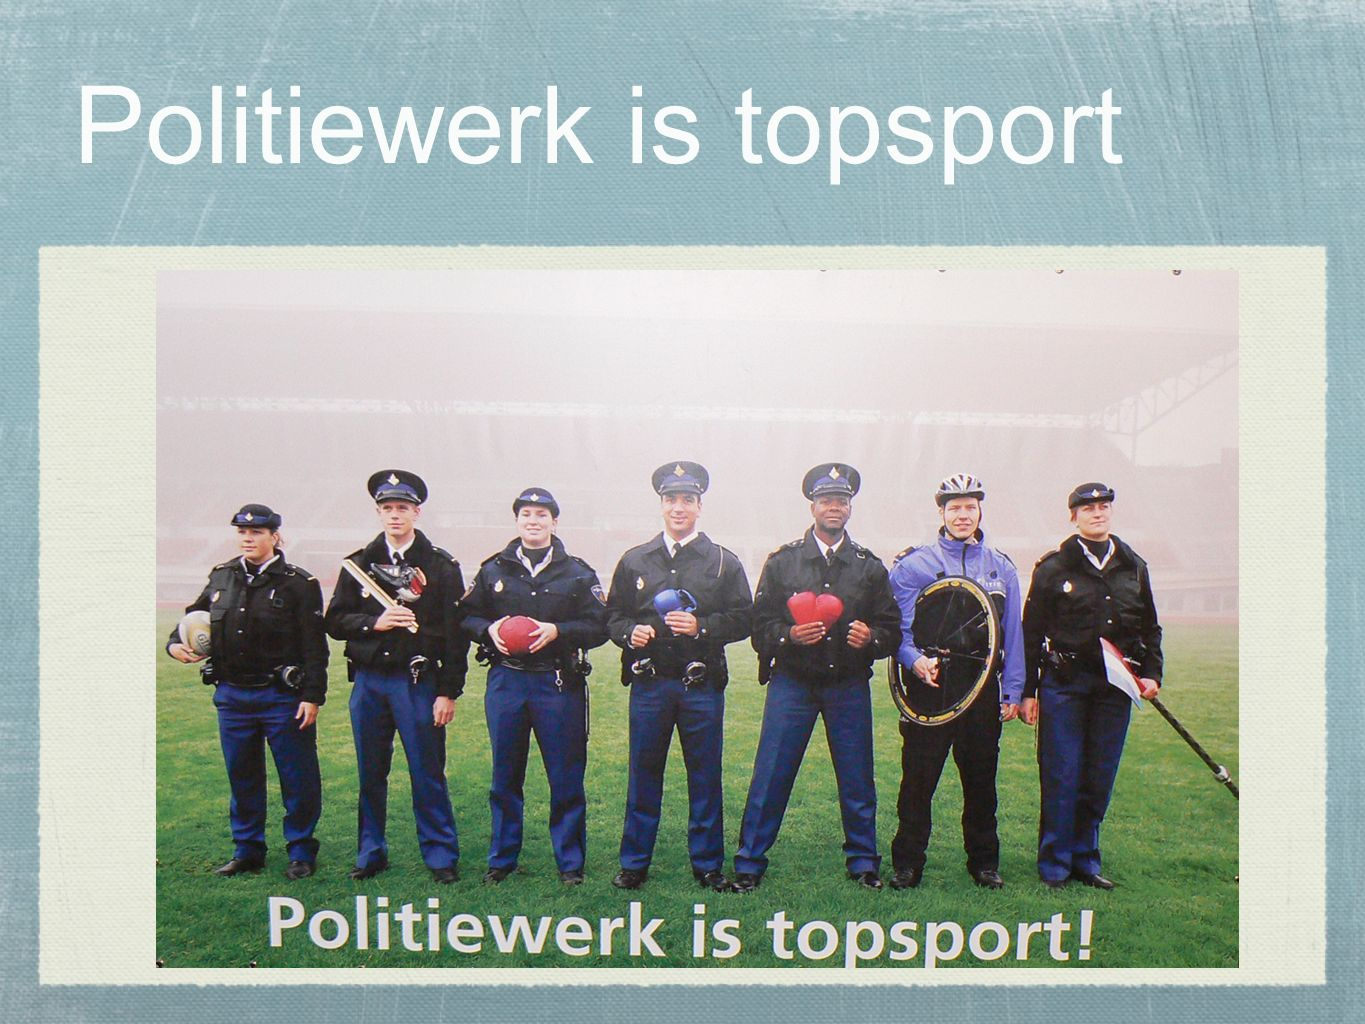 Politiewerk is topsport tekst